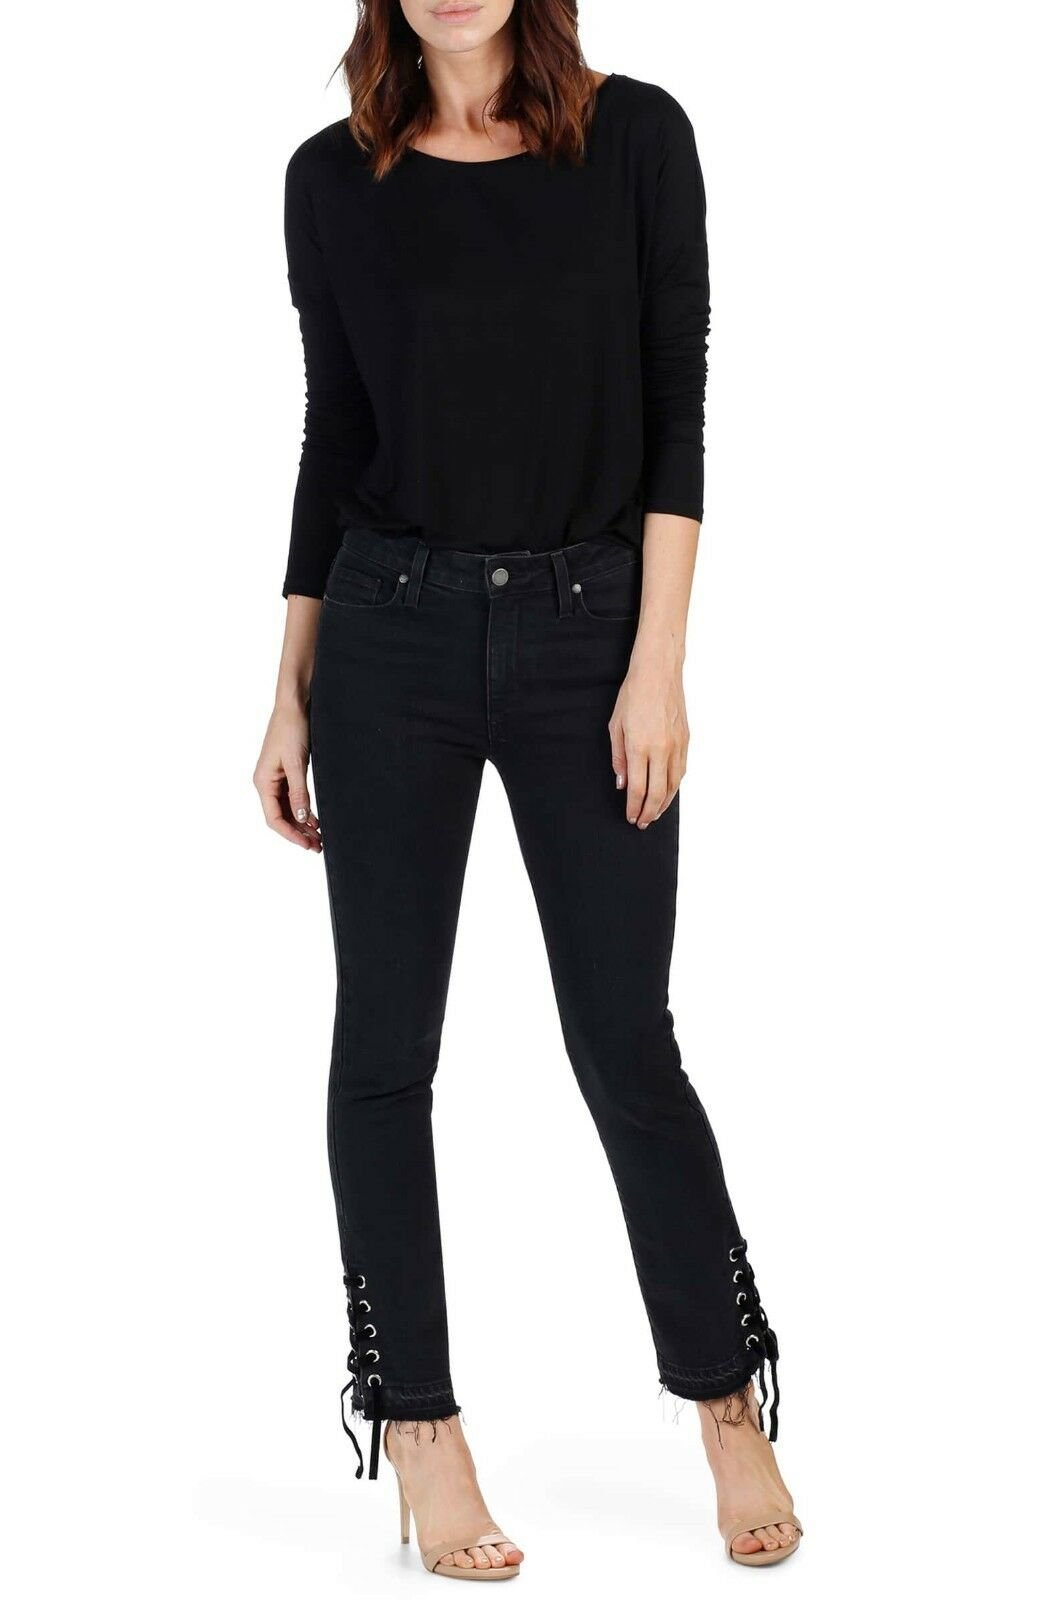 NWT  219 PAIGE Jeans Sz 23 Jacqueline High Rise Straight Raw Hem Ankle Lace